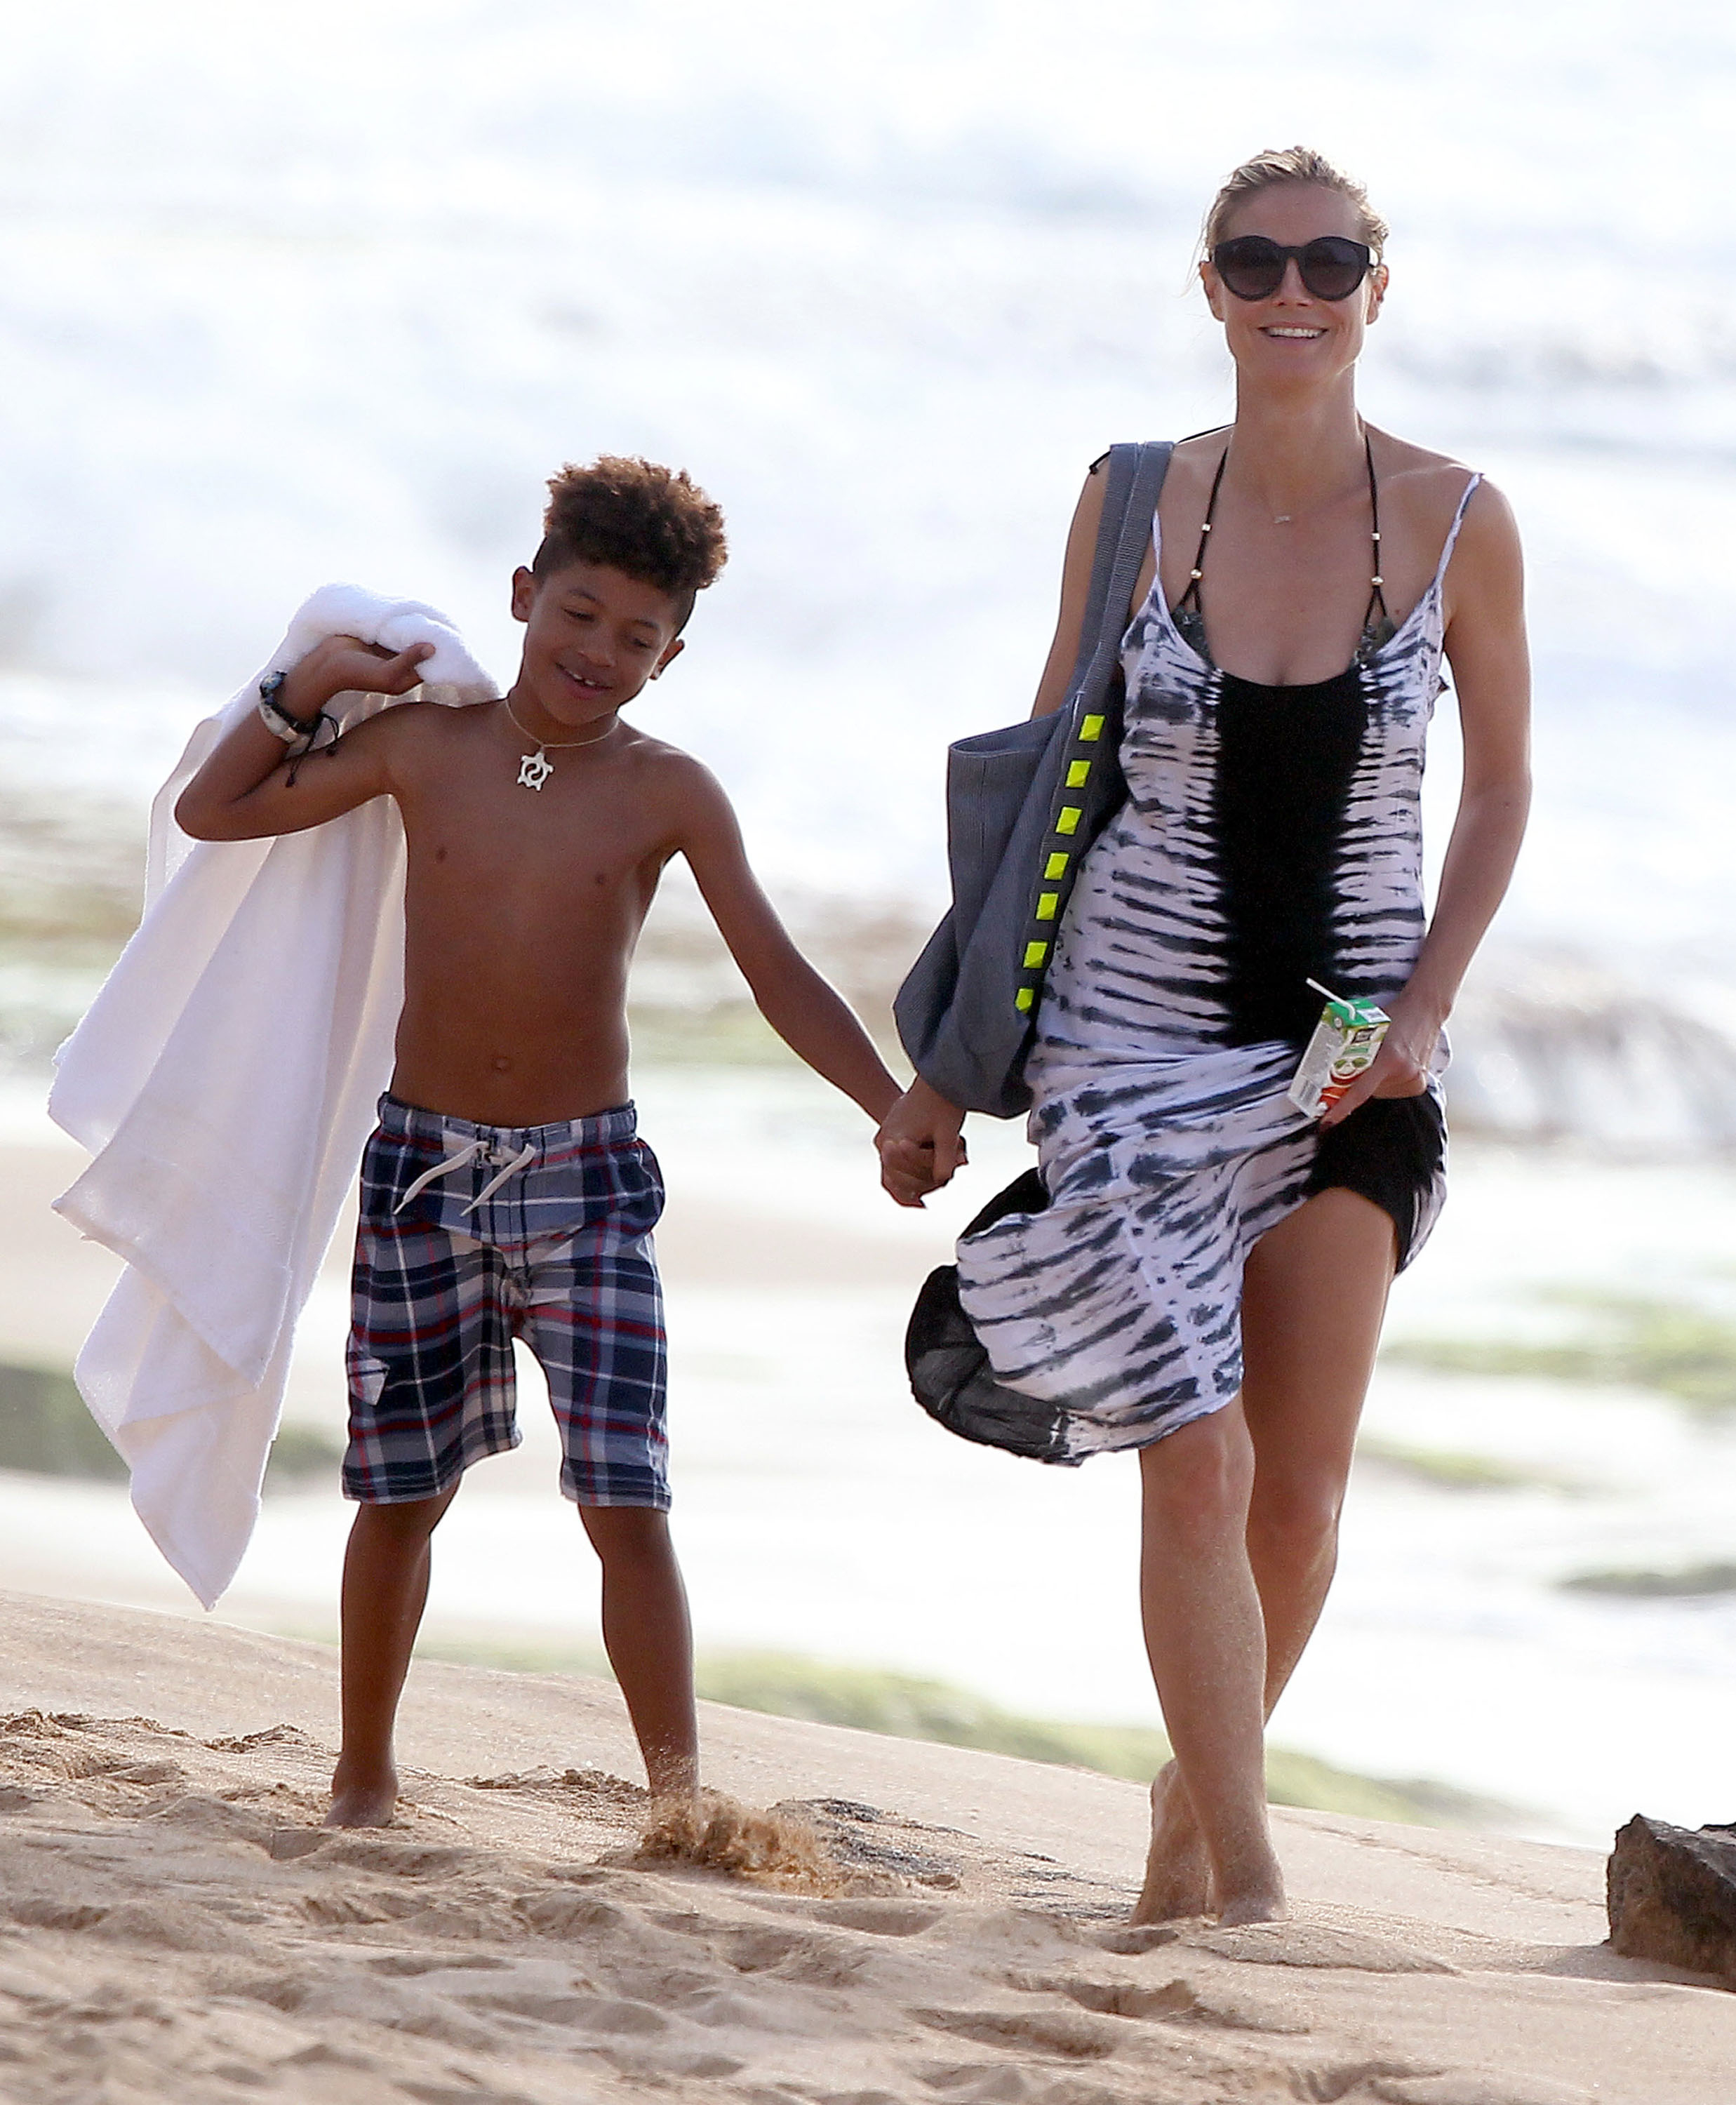 Heidi Klum making time for family and exercise despite her busy schedule